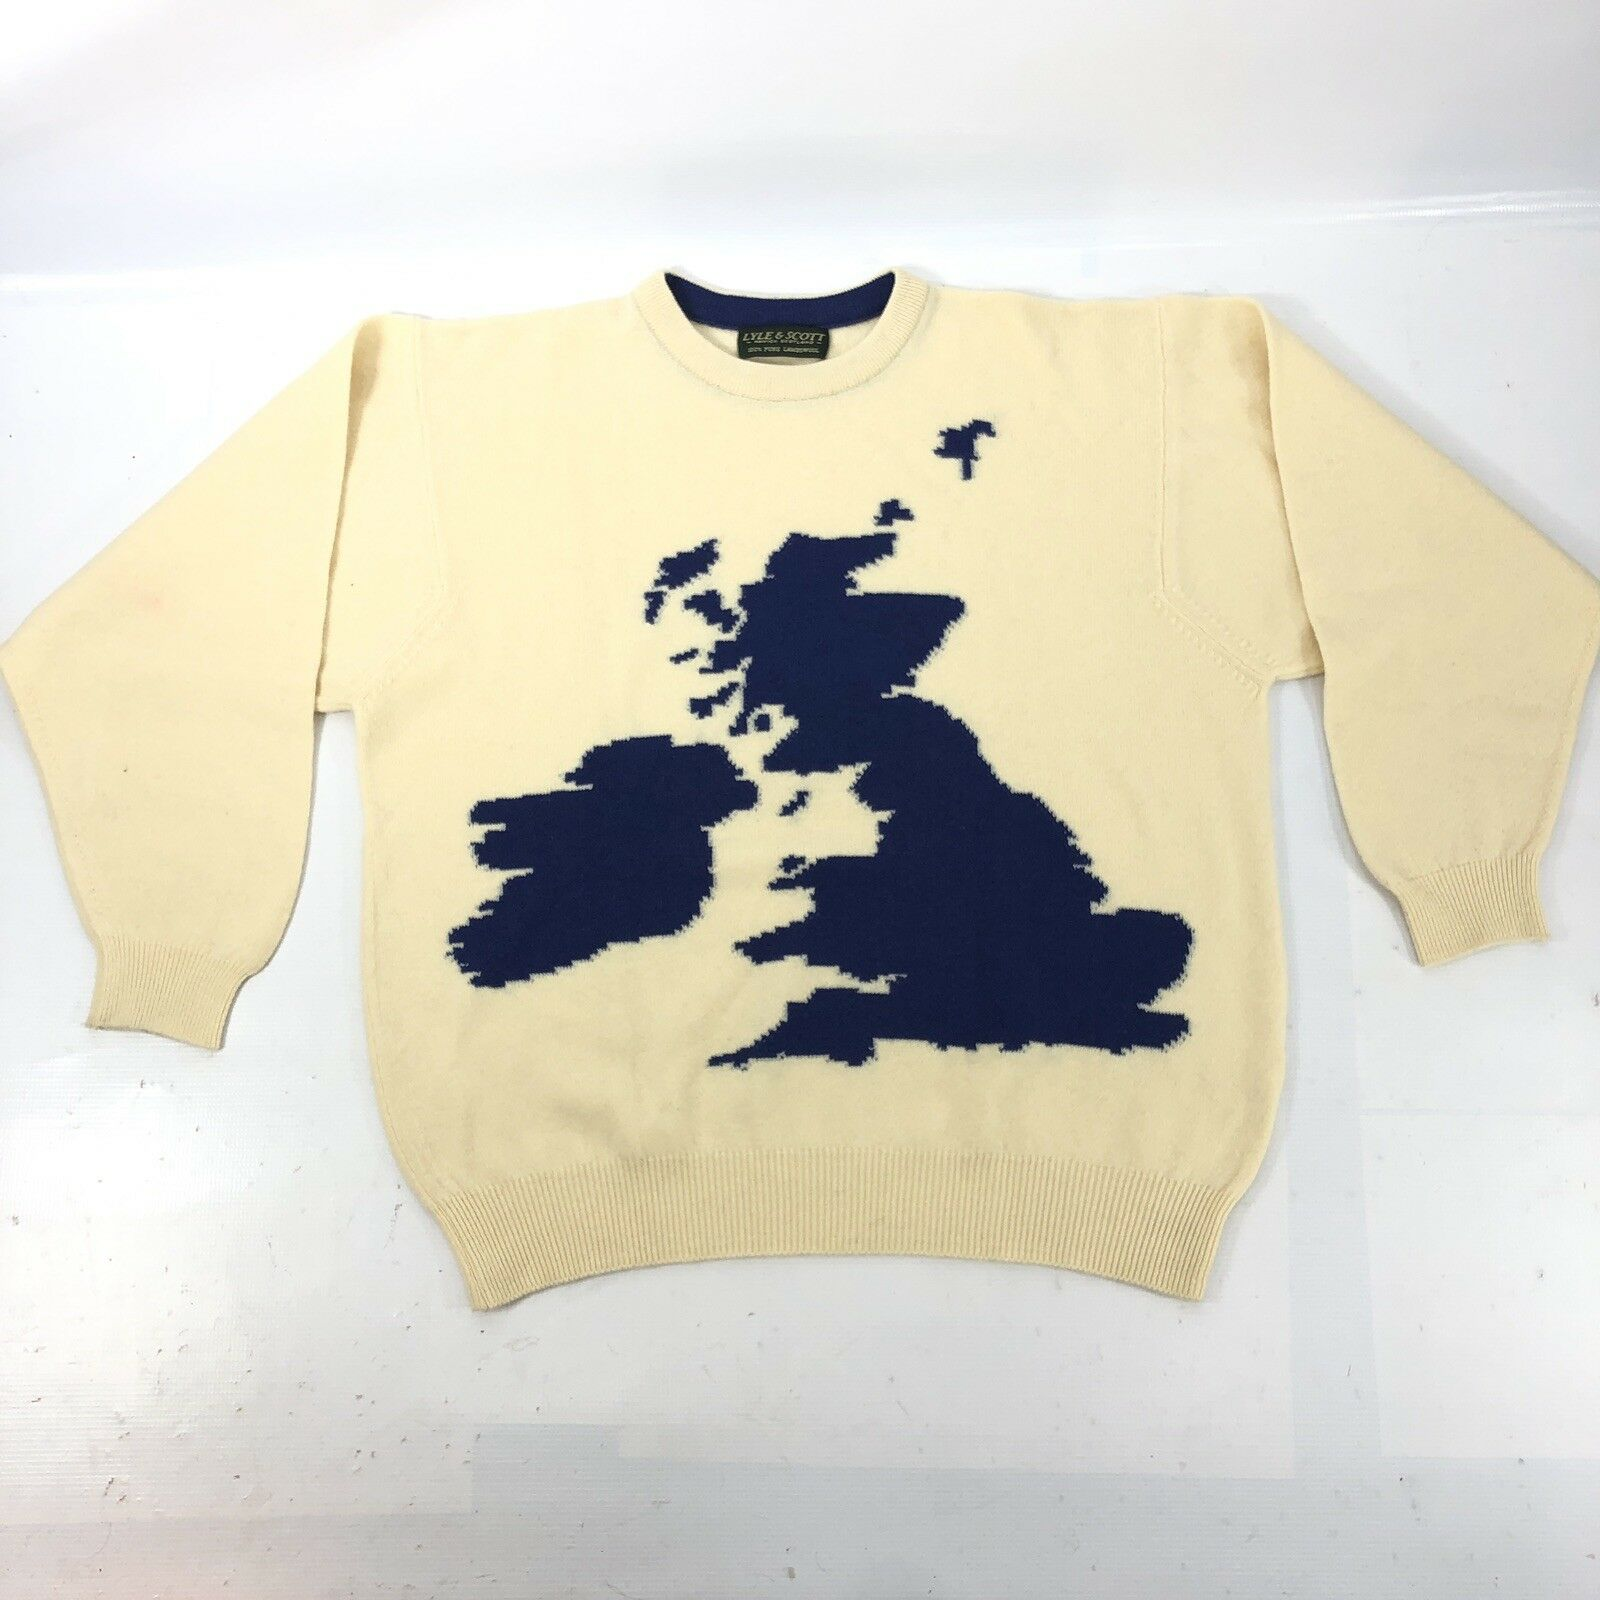 LYLE & SCOTT Men's Sweater XL 100% Wool Beige United Kingdom Made in Scotland